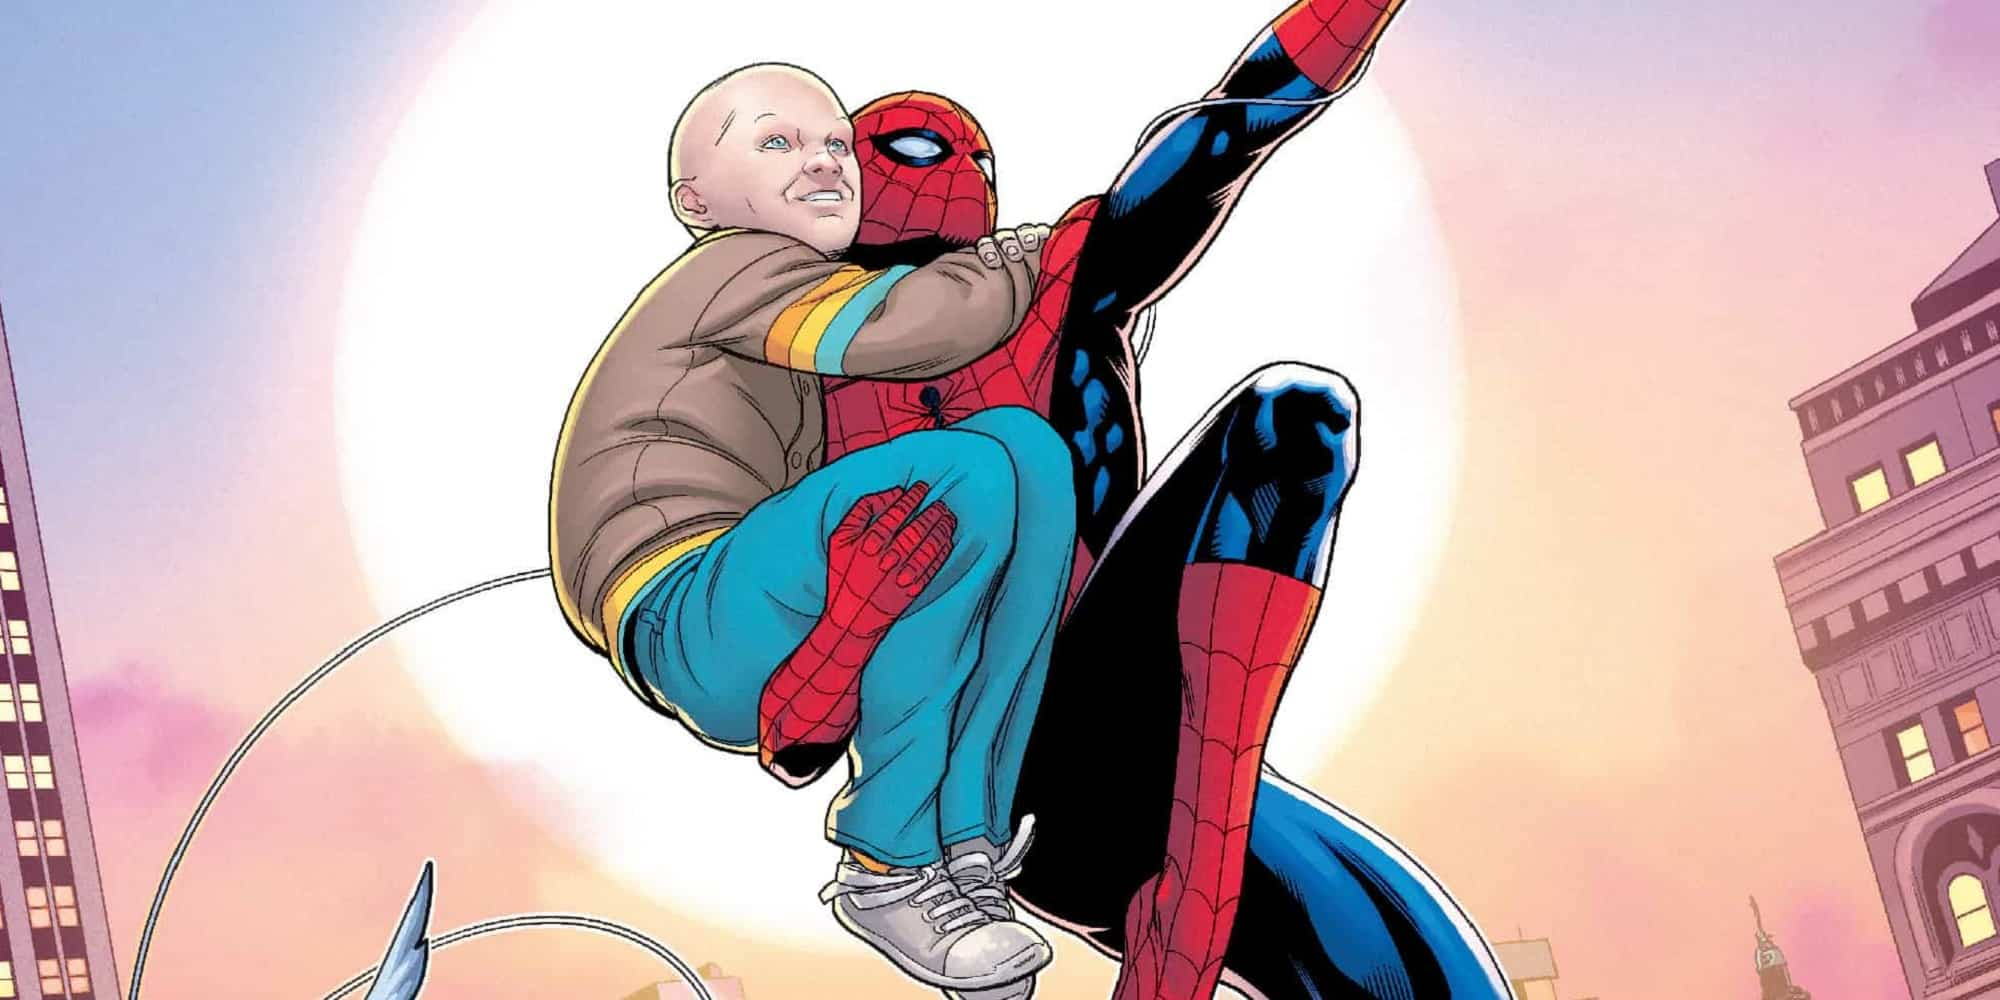 Boy brain surgery spider-man image featured